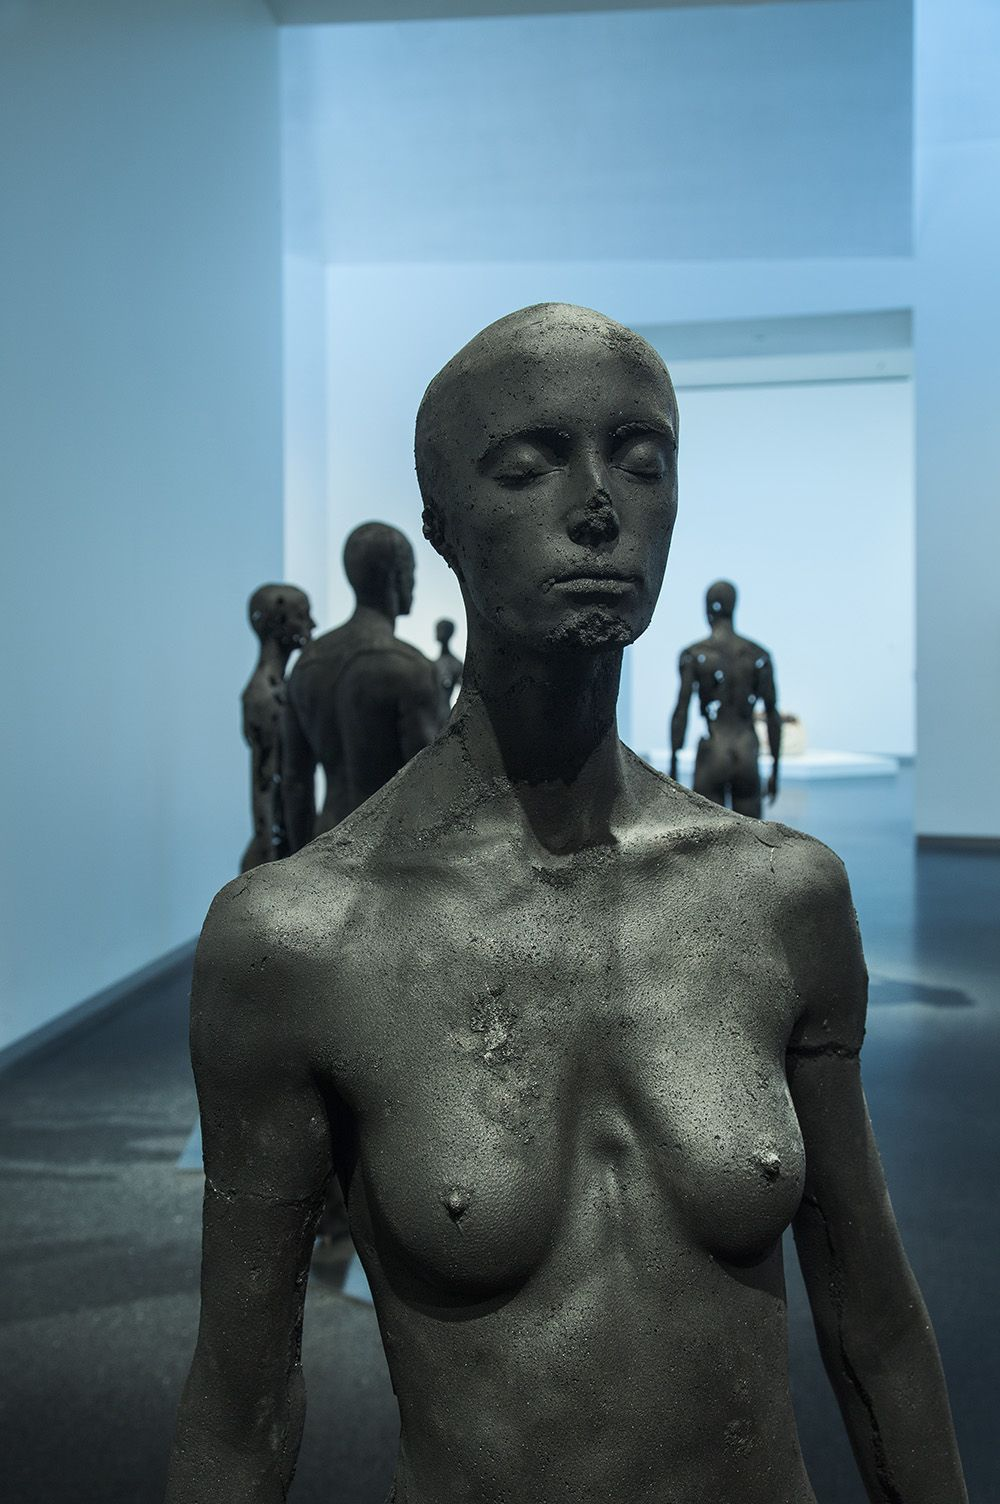 The Presence of Absence - Female (I),Tom Price,Sculpture, detail 1